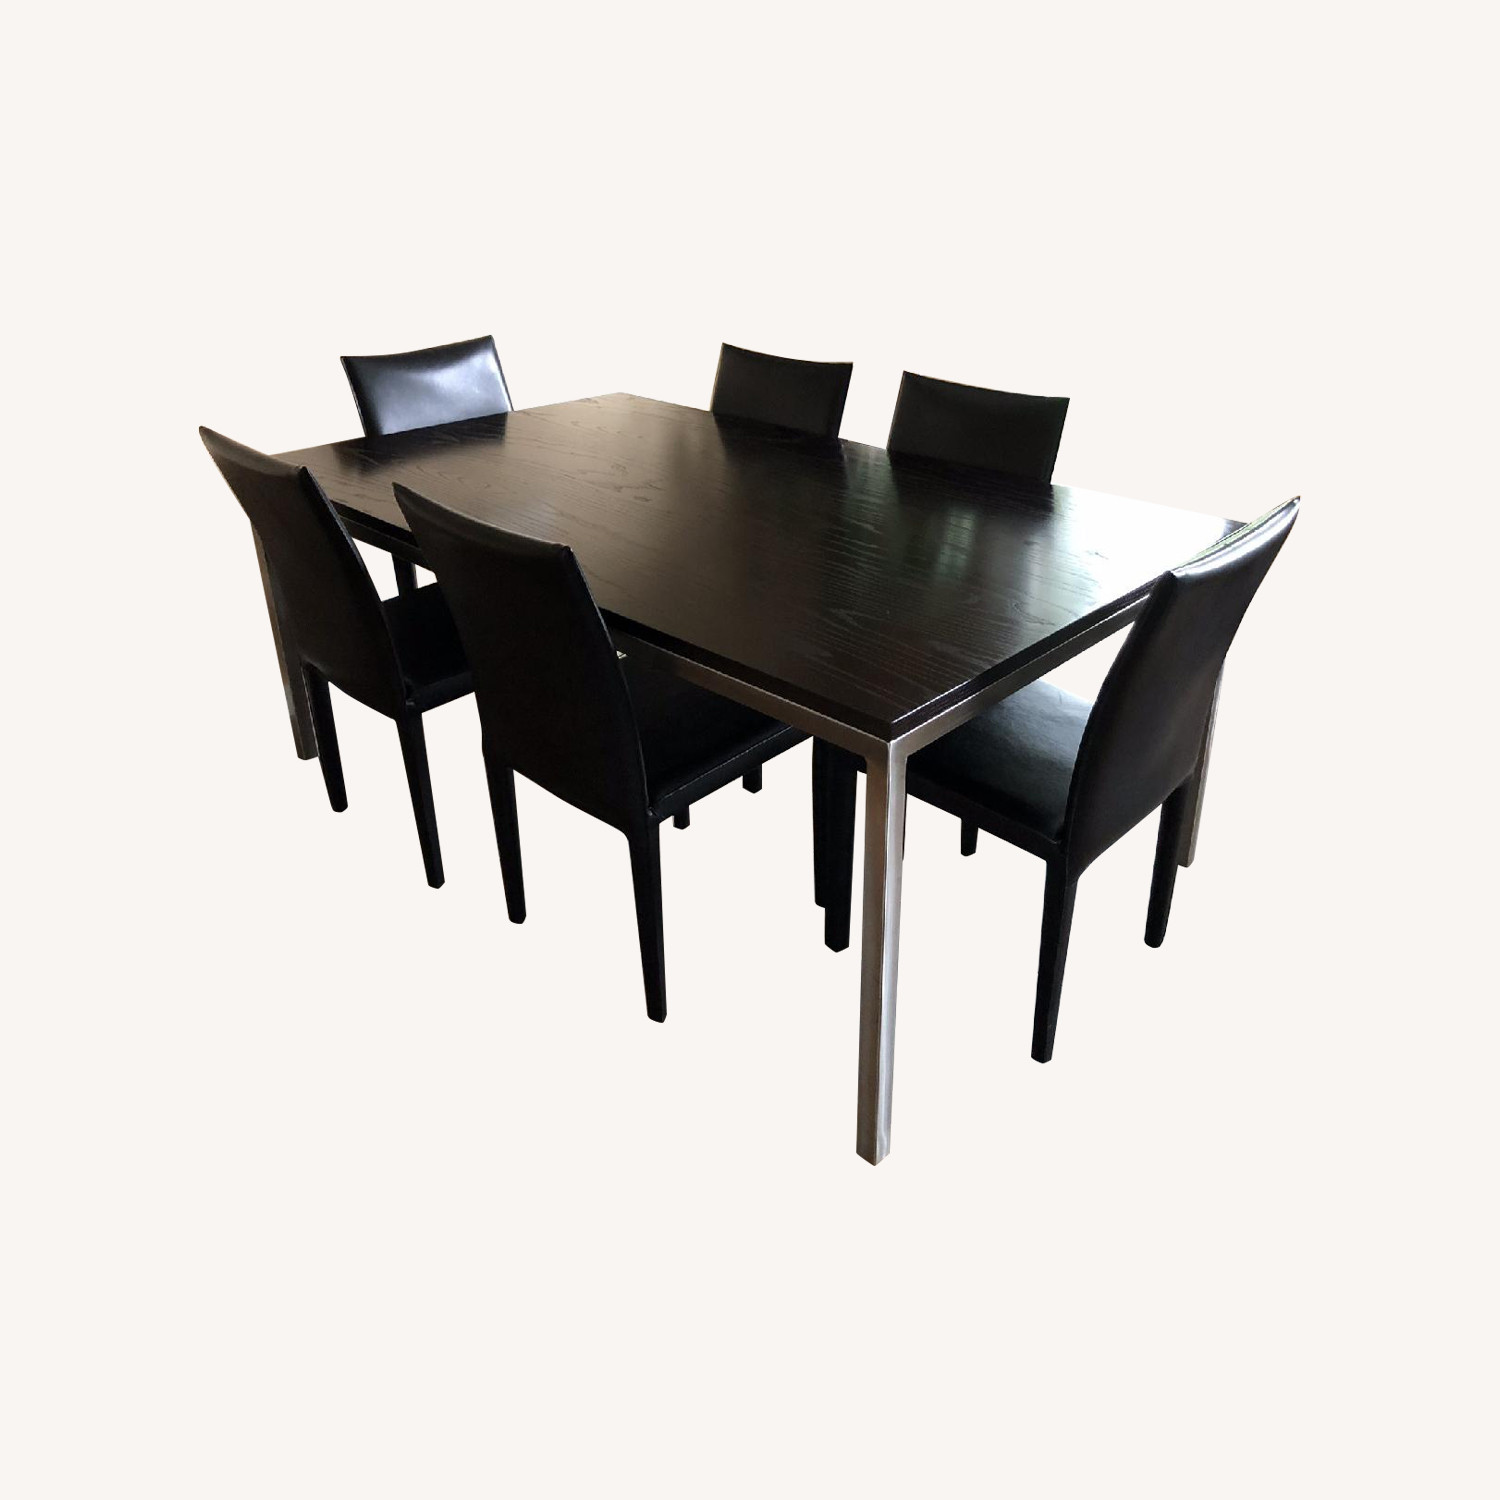 Crate & Barrel Parsons Table w/ 6 Italian Leather Chairs